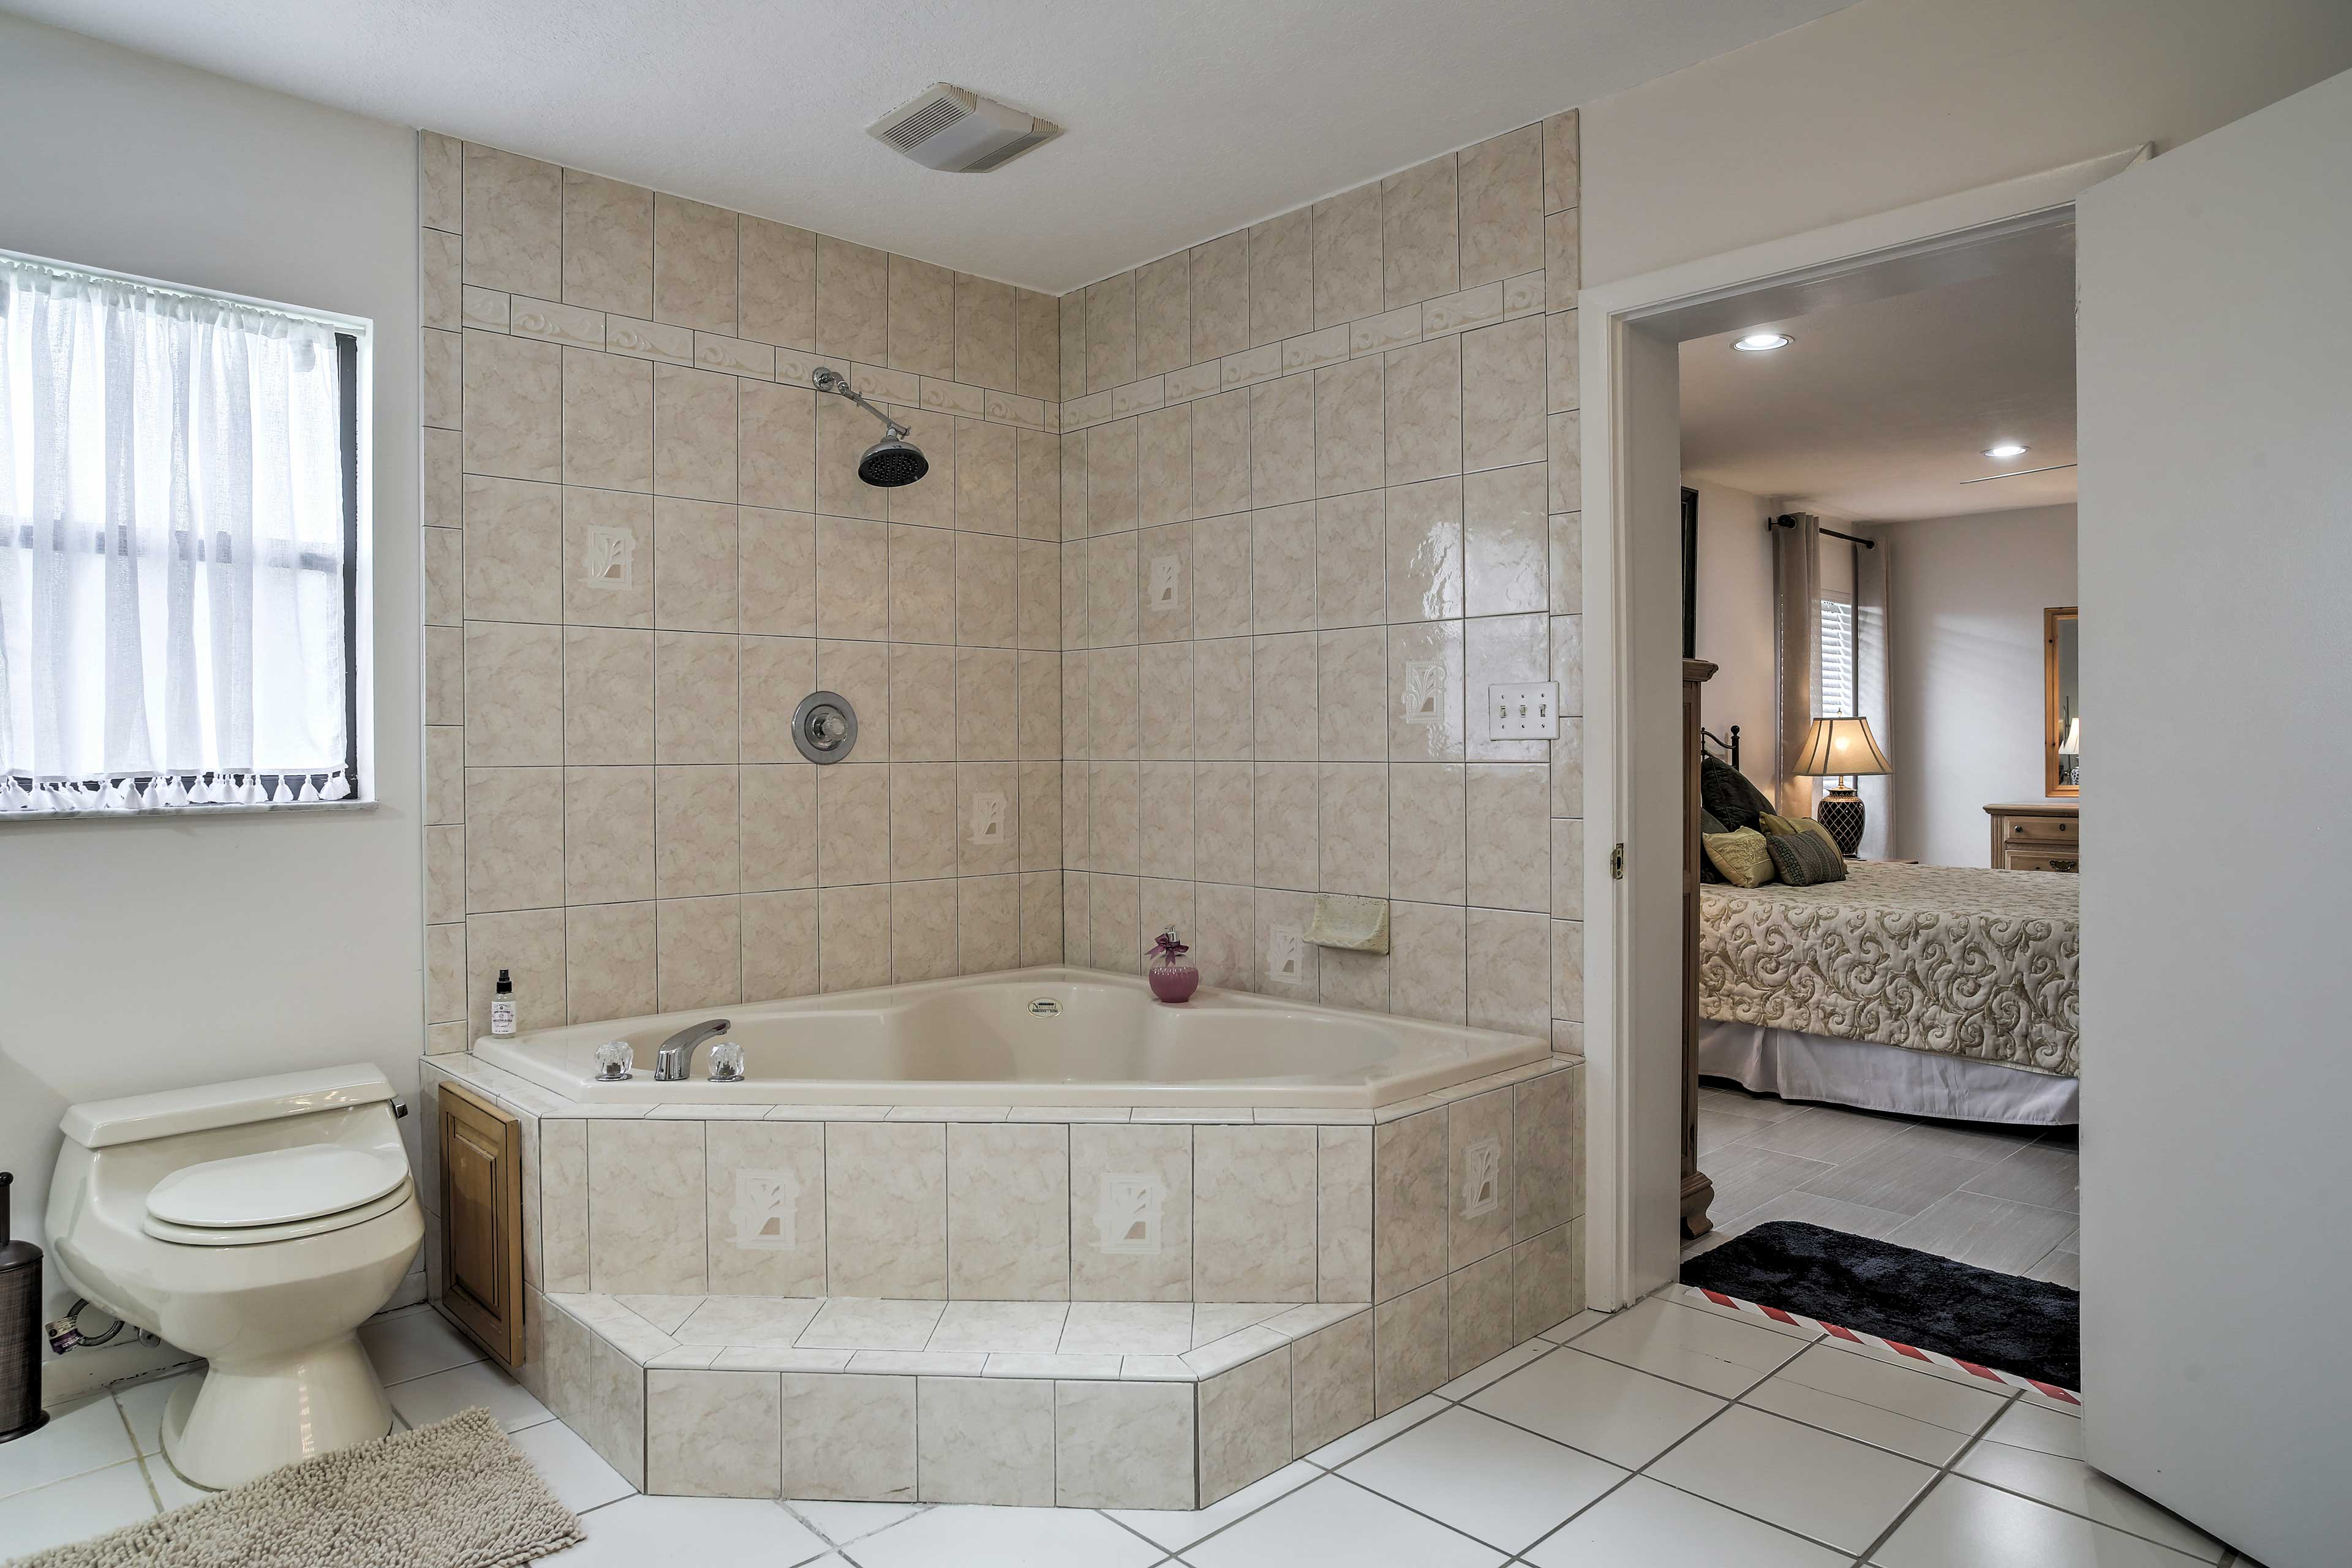 Soak in the jetted tub to unwind after the day.